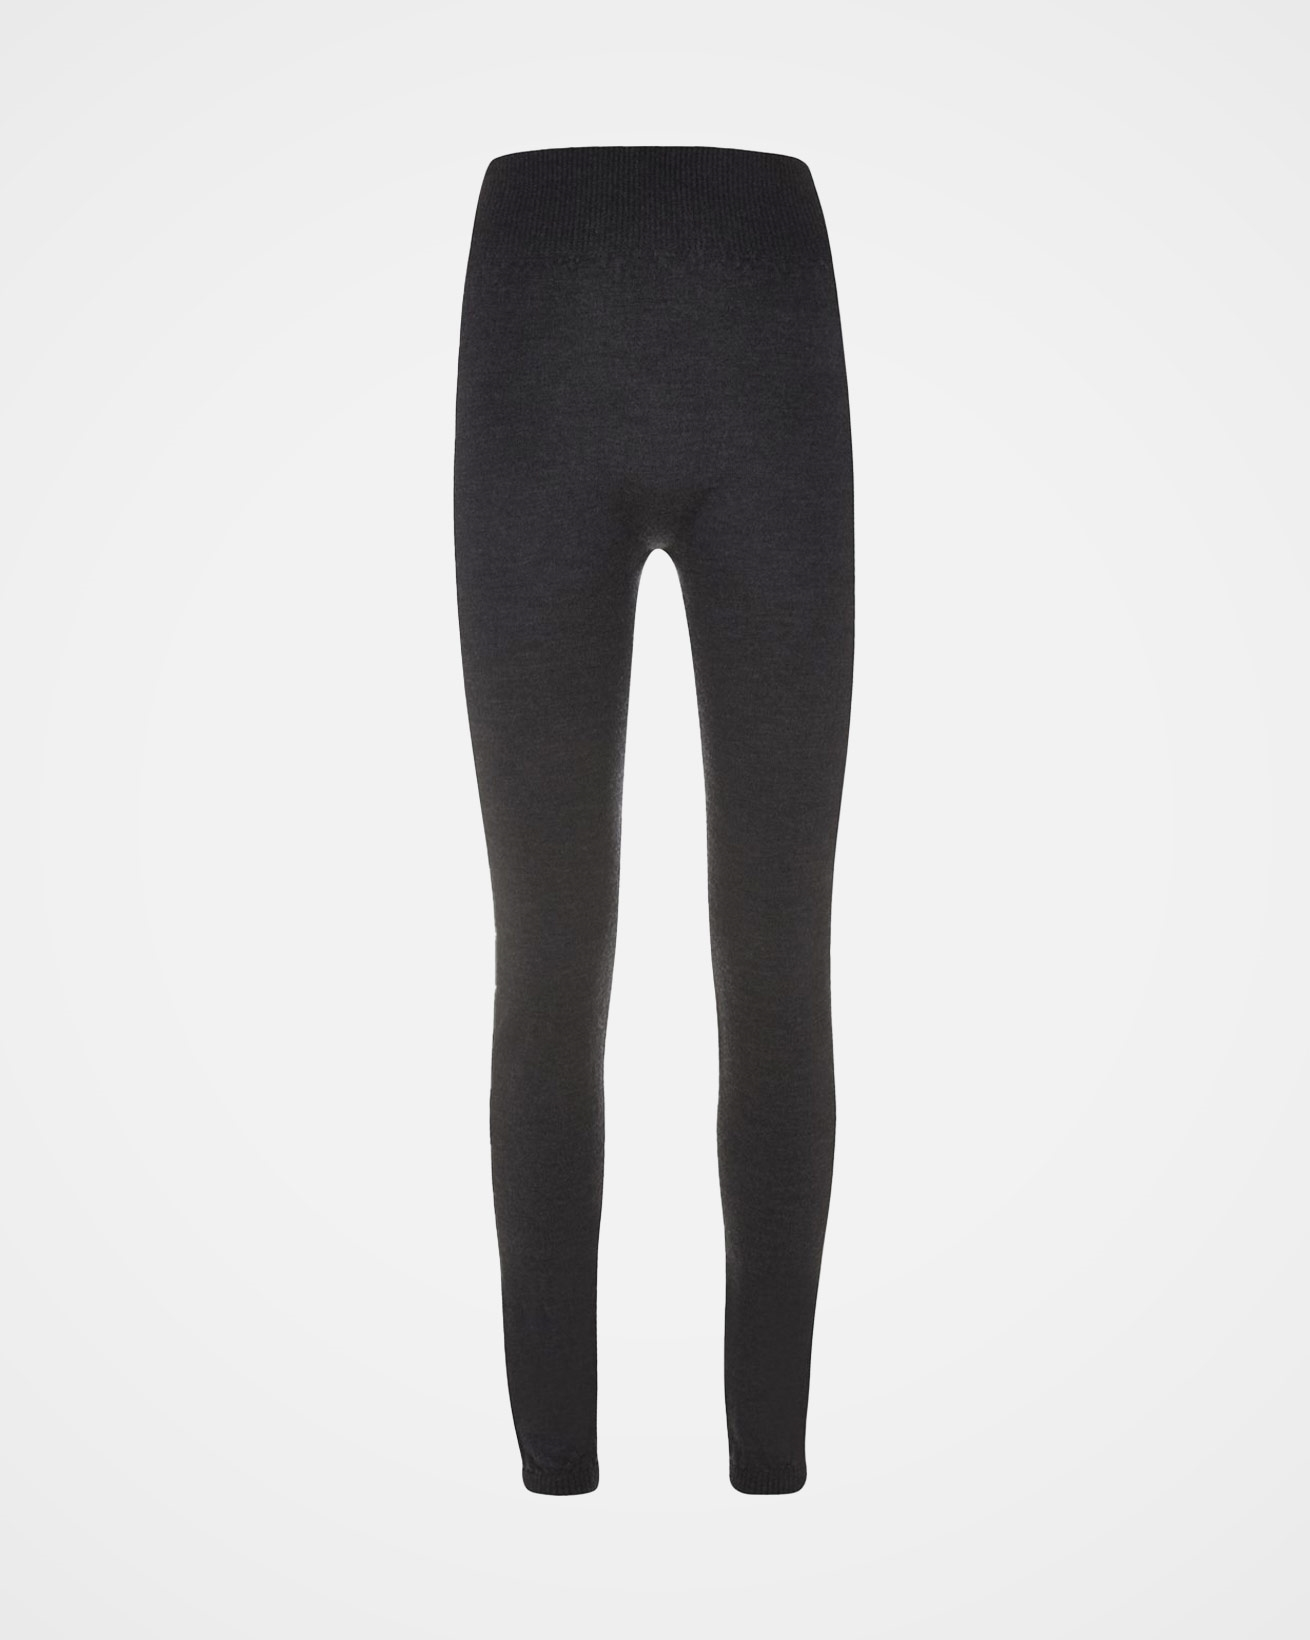 6073_merino-loung-pants_charcoal_front.jpg